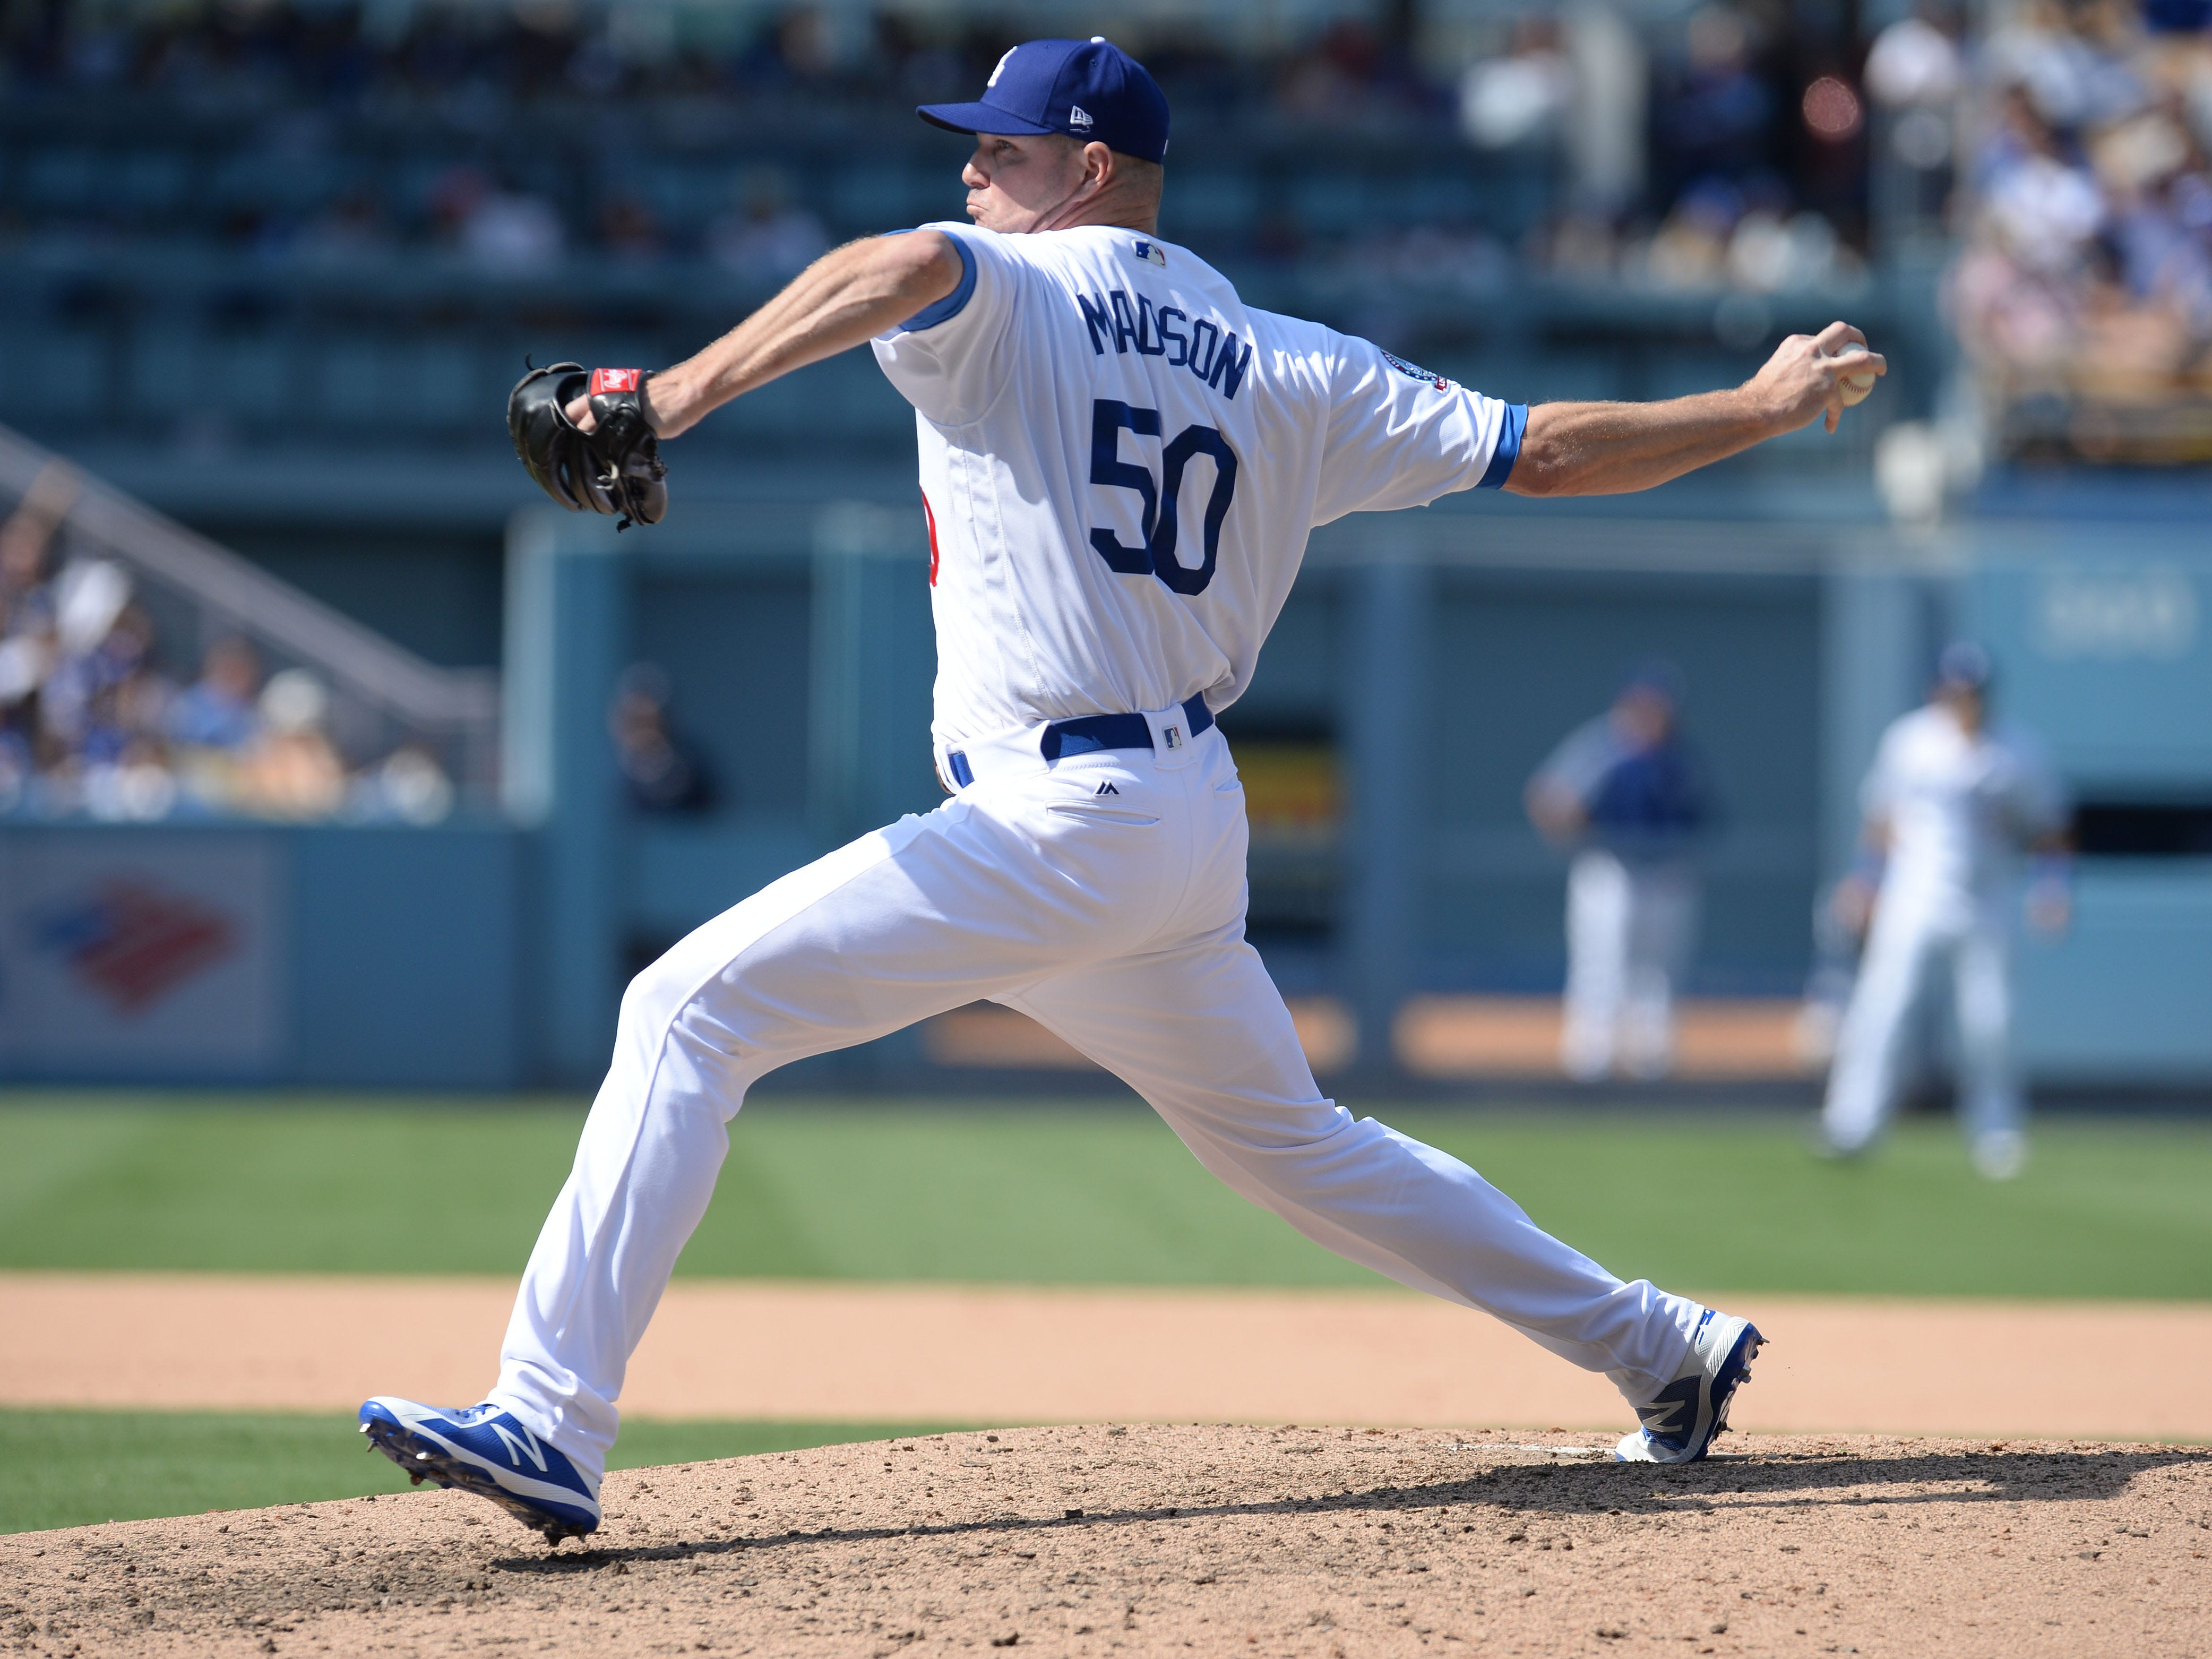 September 2, 2018; Los Angeles, CA, USA; Los Angeles Dodgers relief pitcher Ryan Madson (50) throws against the Arizona Diamondbacks in the seventh inning at Dodger Stadium. Mandatory Credit: Gary A. Vasquez-USA TODAY Sports